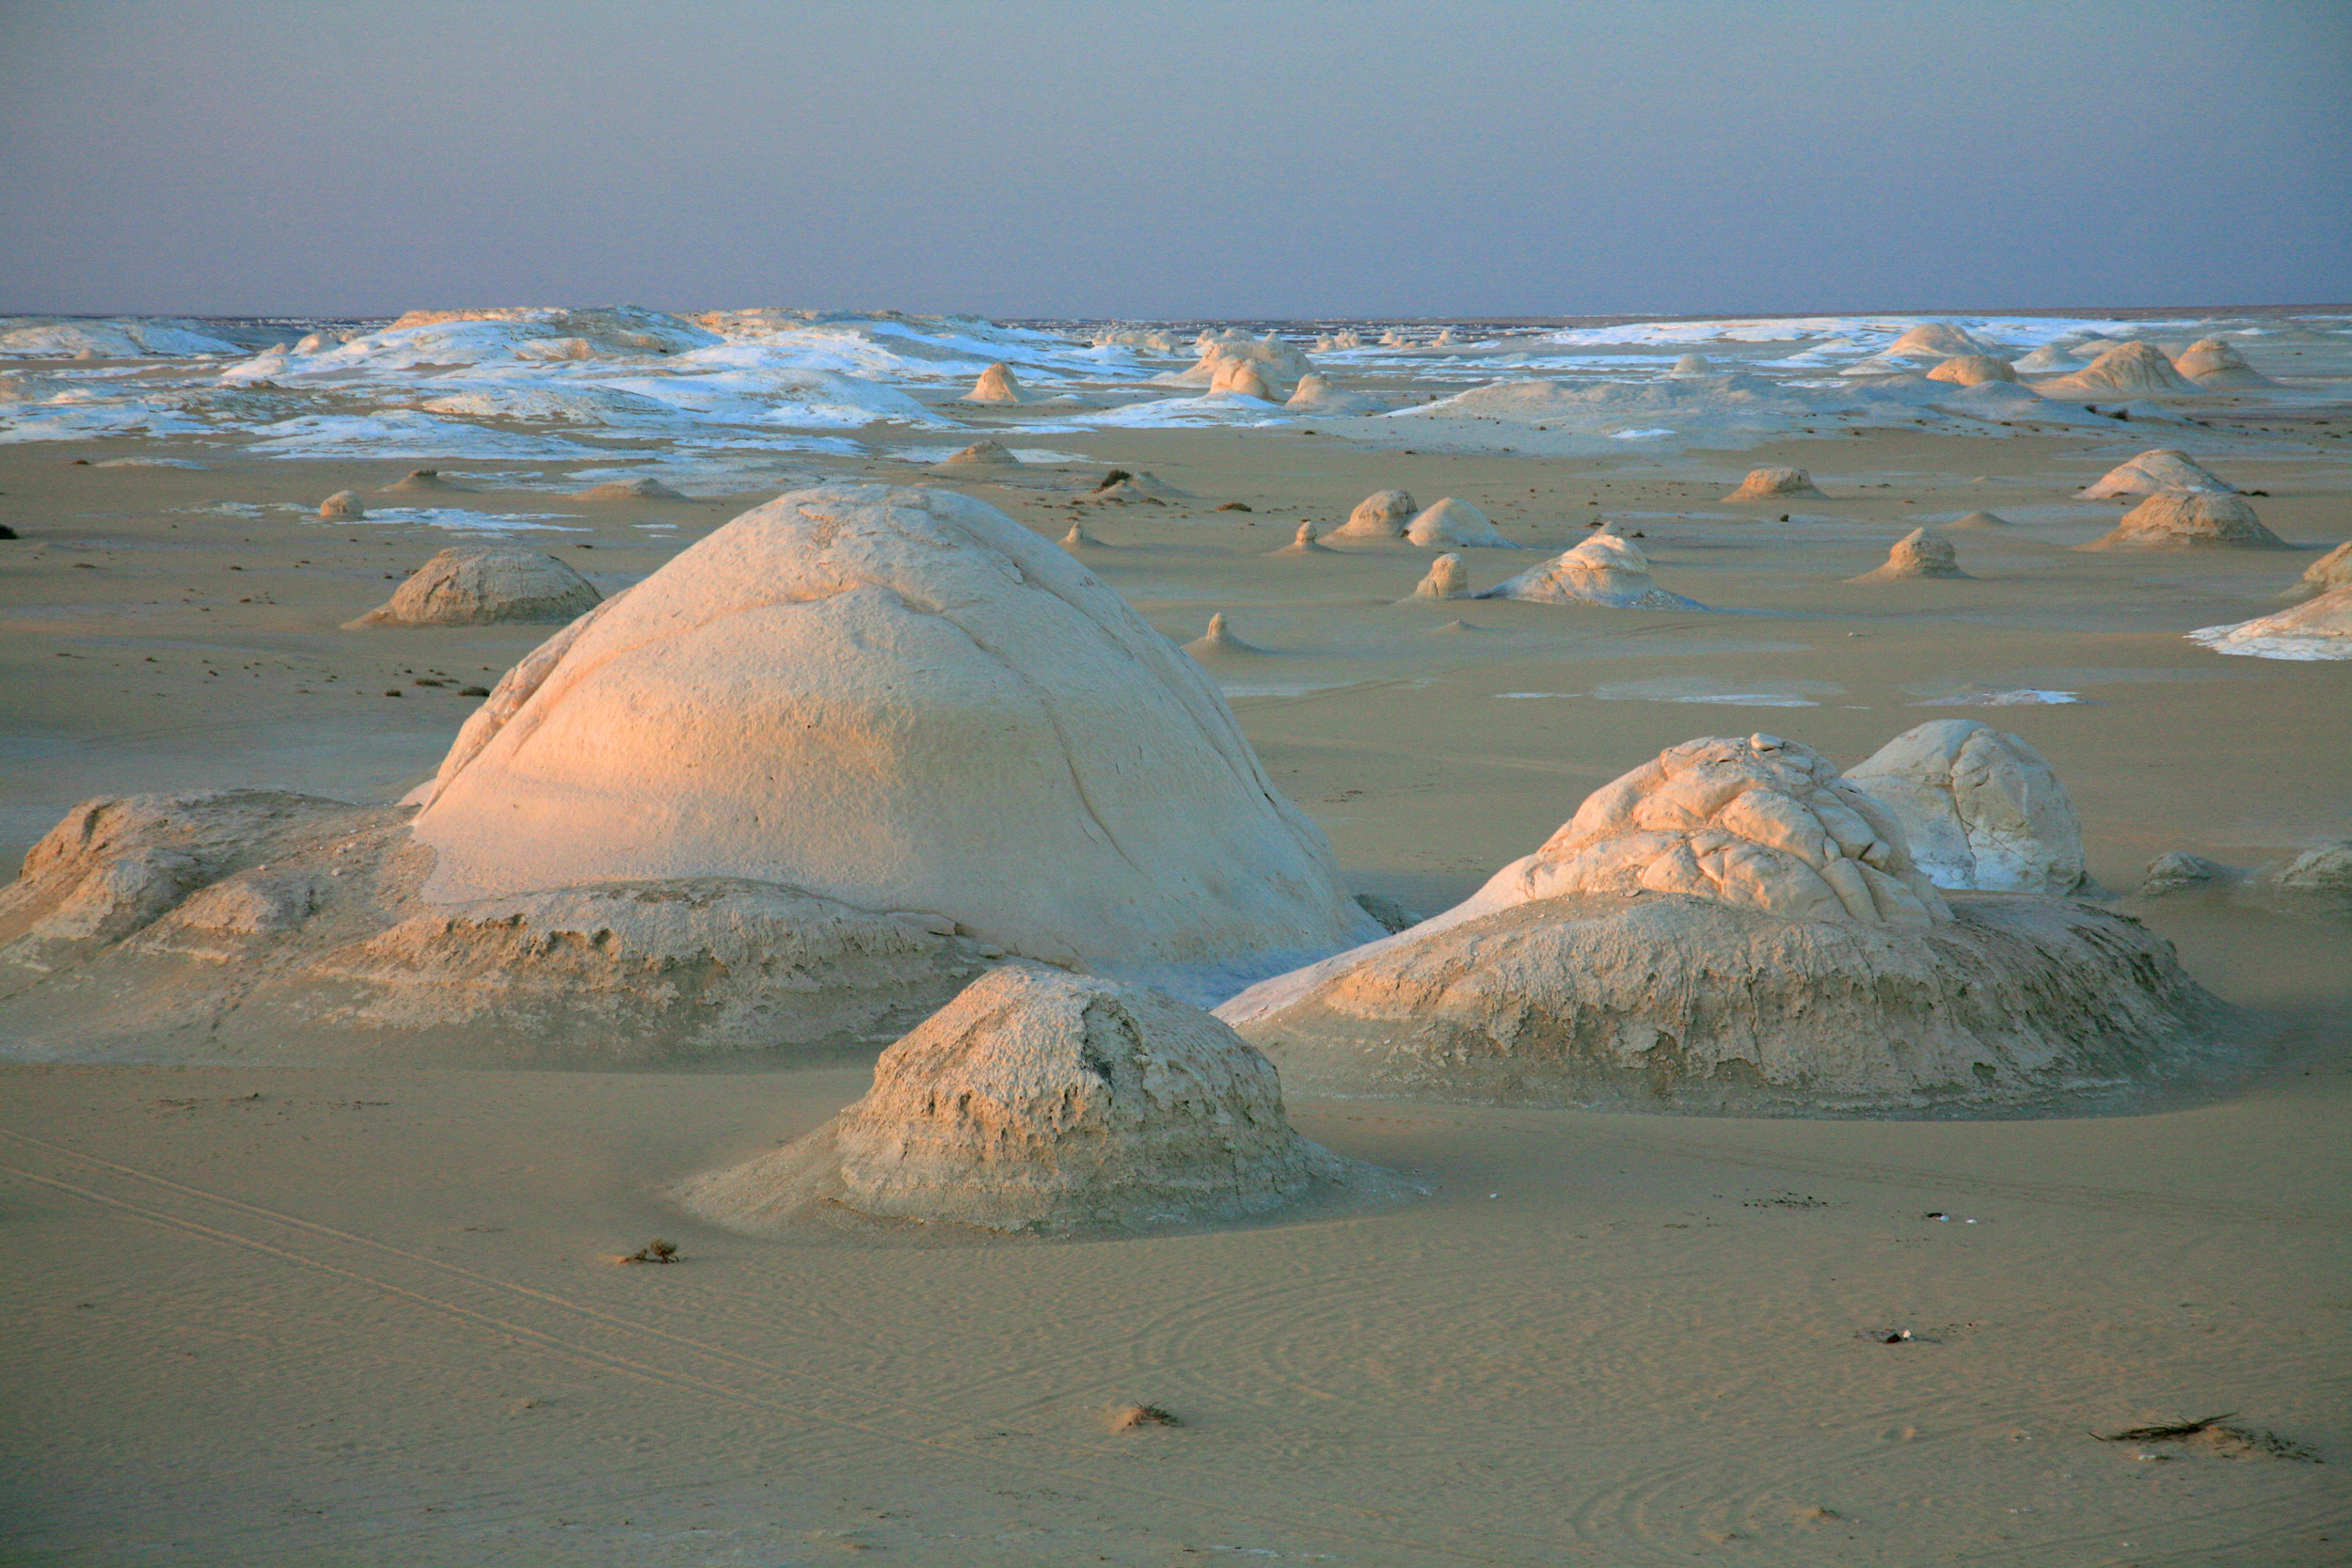 Small humps in the sand with white foamy striations in the background